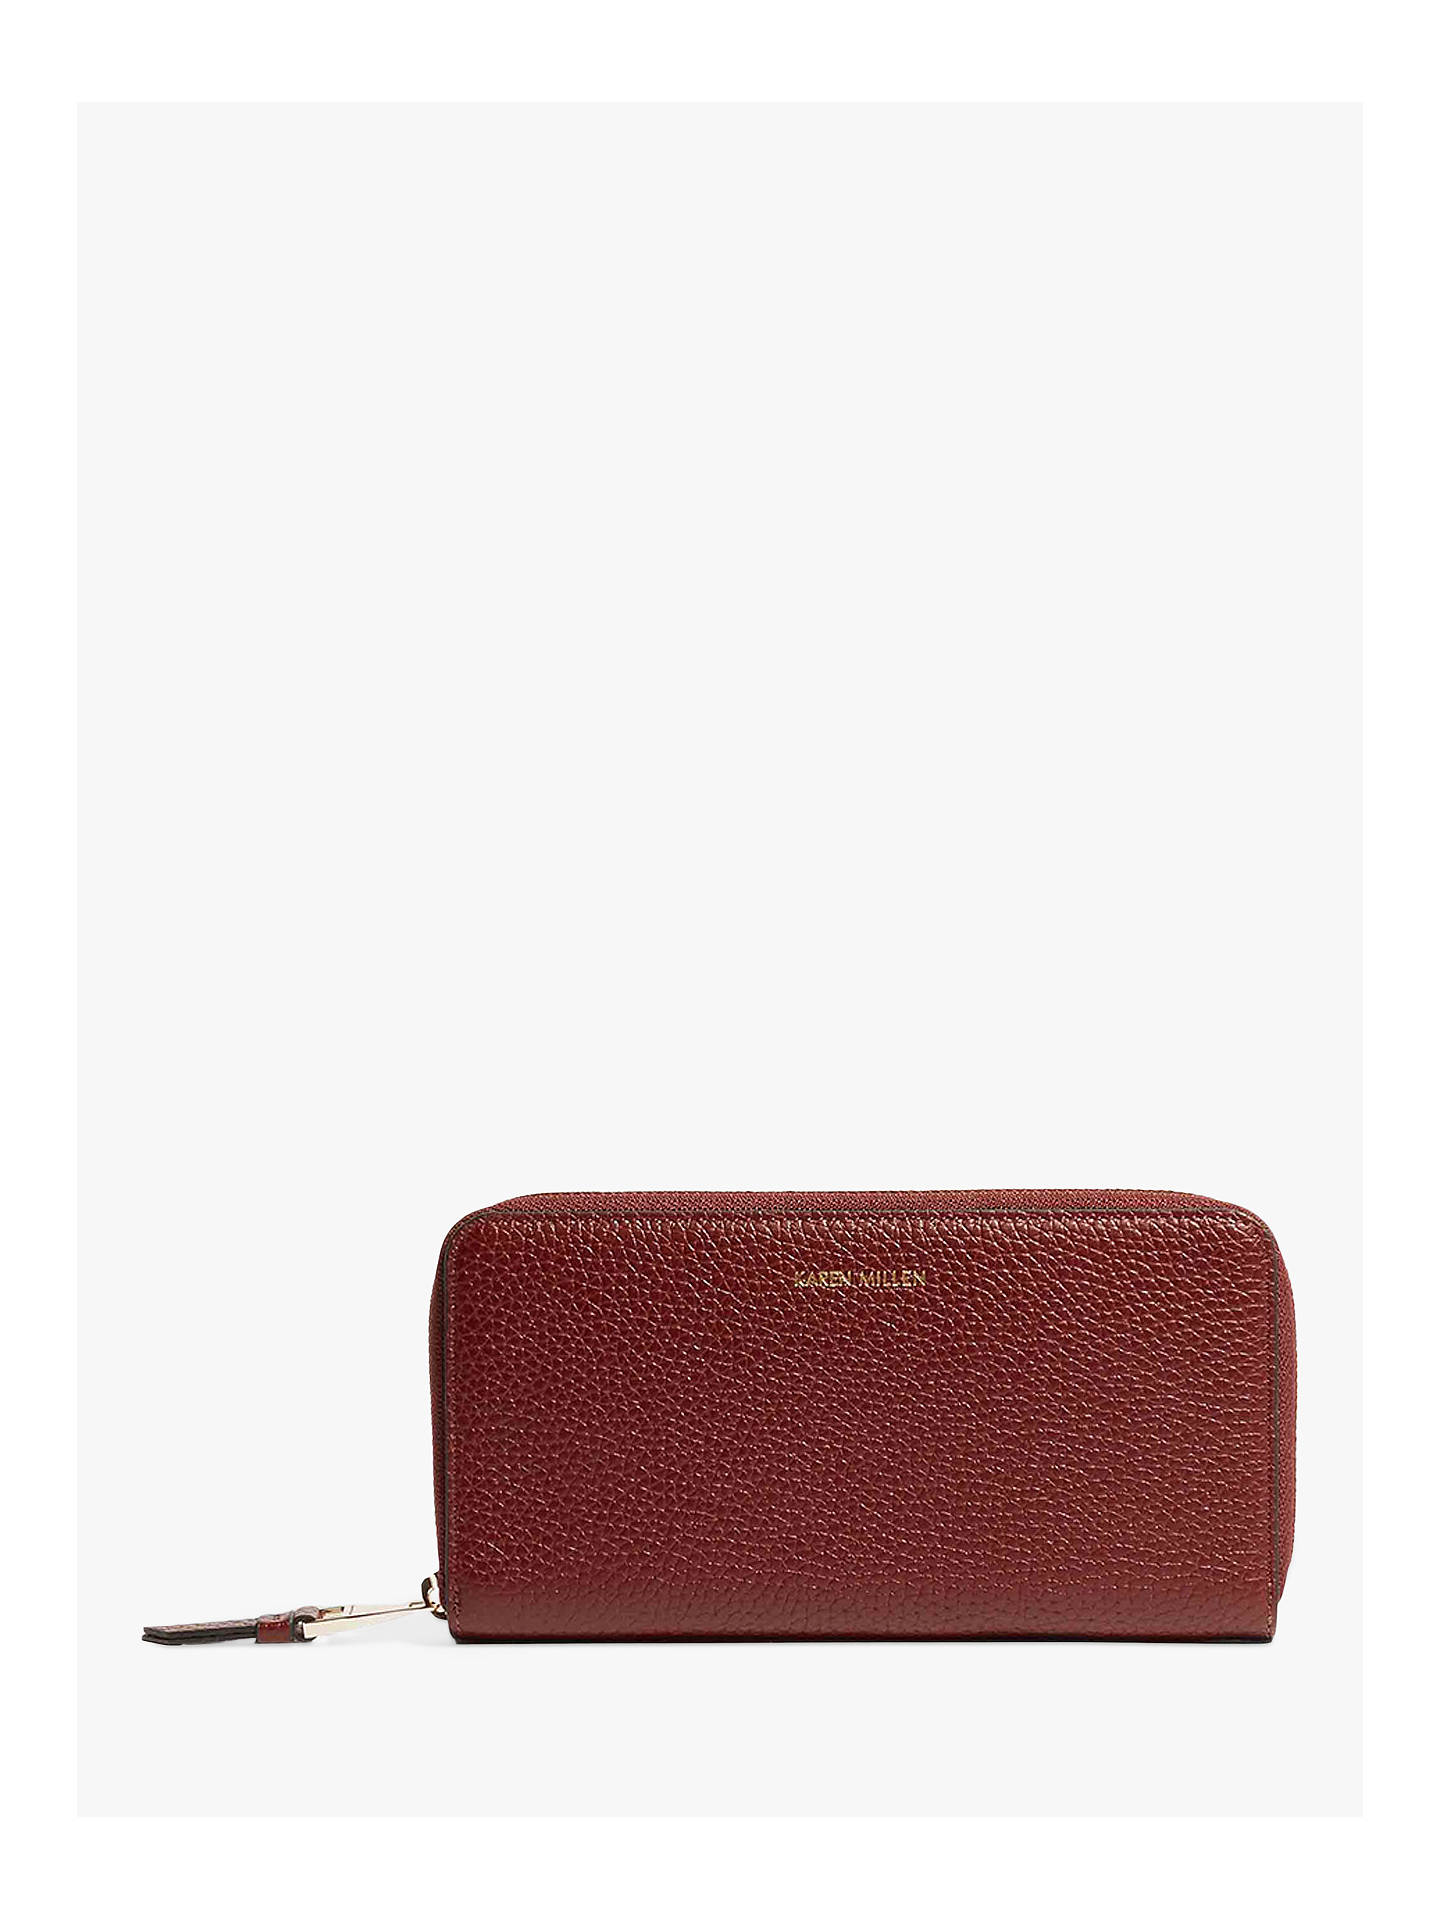 Karen Millen Zip Around Leather Purse Dark Red Online At Johnlewis